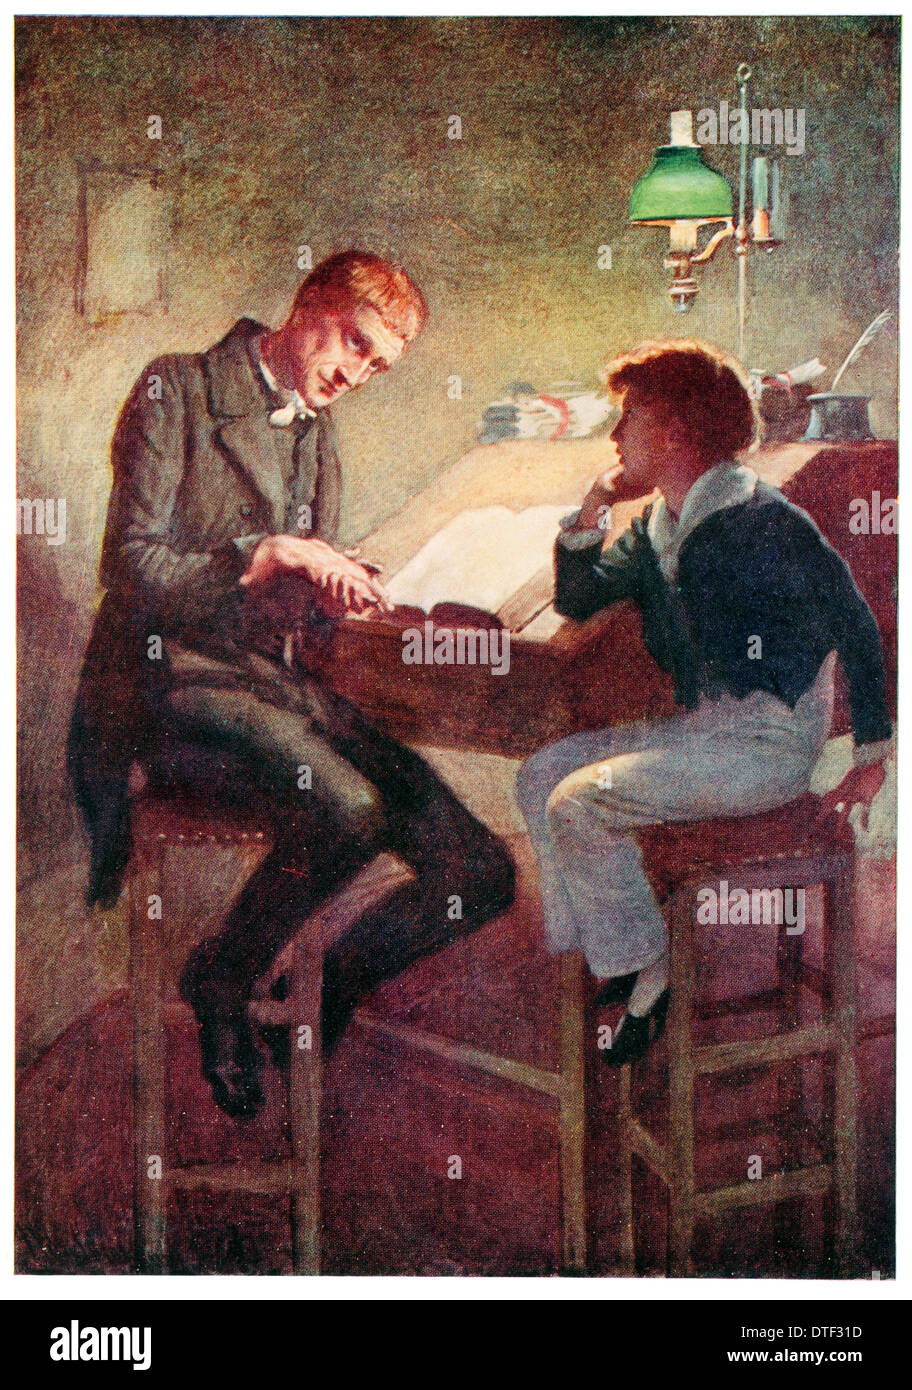 uriah heep and david copperfield illustration from the novel by stock photo uriah heep and david copperfield illustration from the novel by charles john huffam dickens